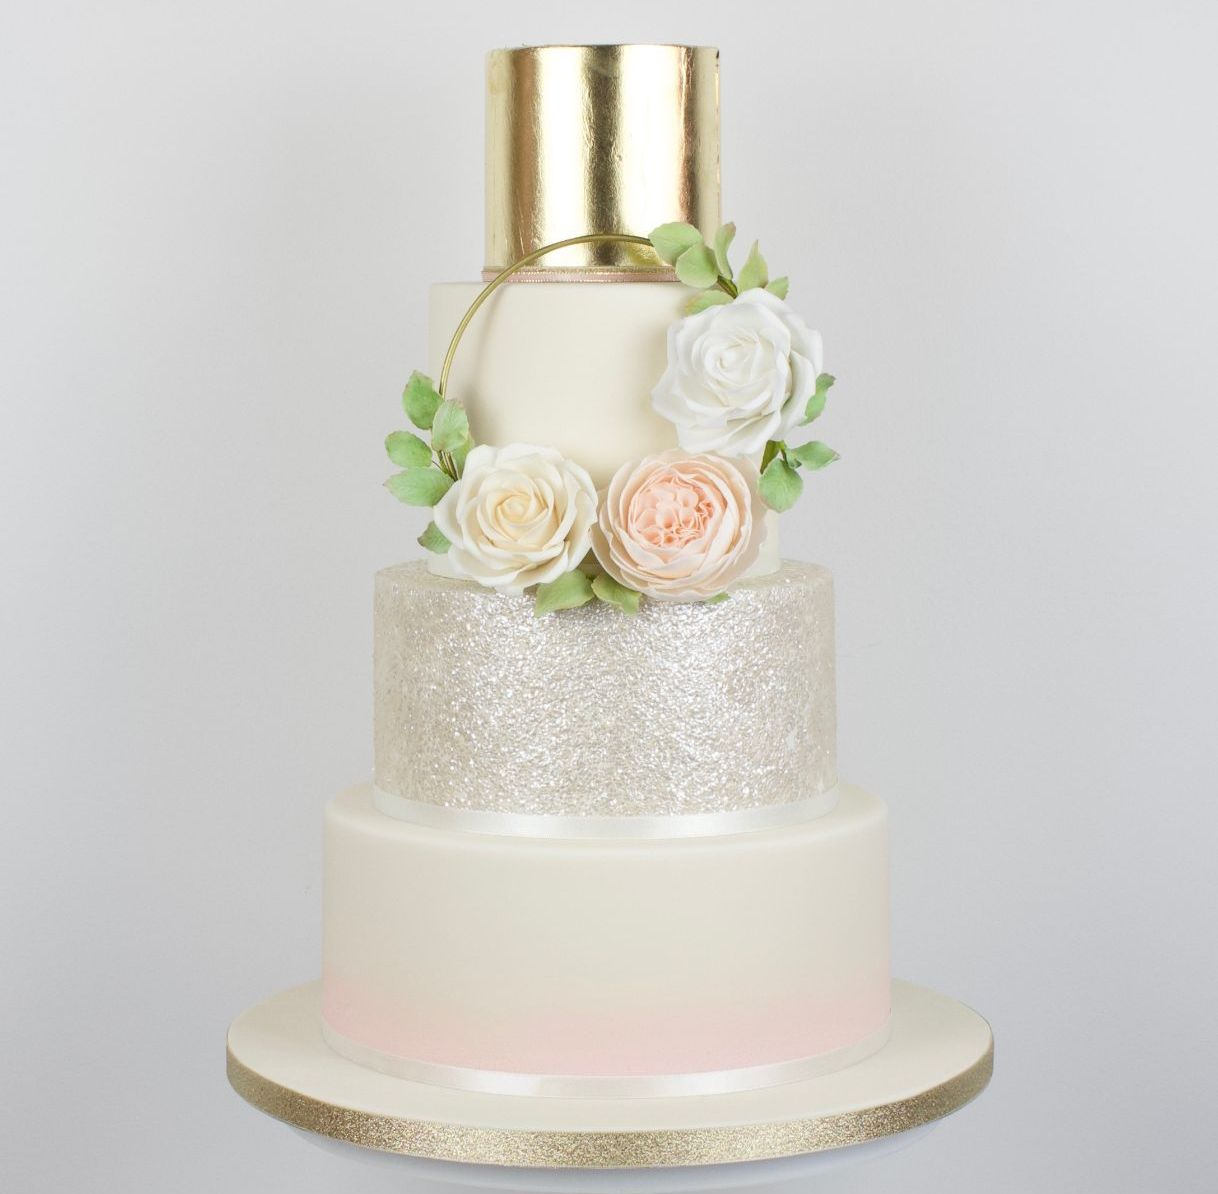 Ombre, glittered wedding cake with gold florl hoop and edible gold leaf